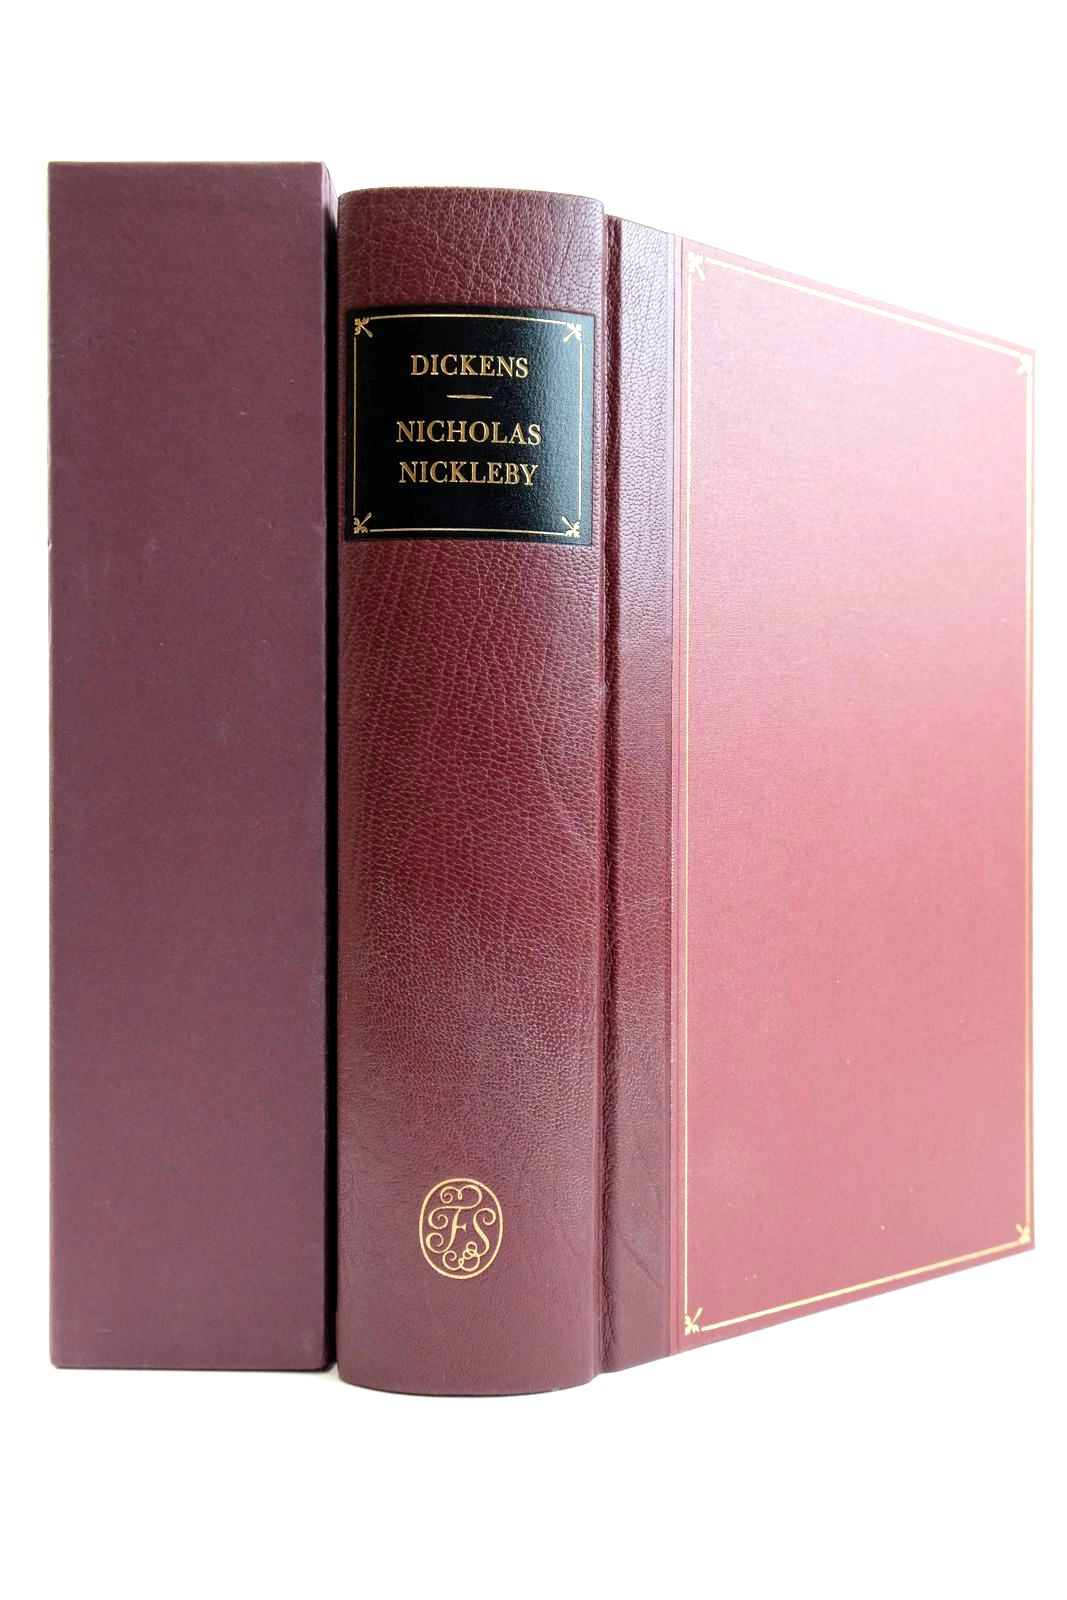 Photo of NICHOLAS NICKLEBY written by Dickens, Charles Callow, Simon illustrated by Phiz,  published by Folio Society (STOCK CODE: 2132426)  for sale by Stella & Rose's Books